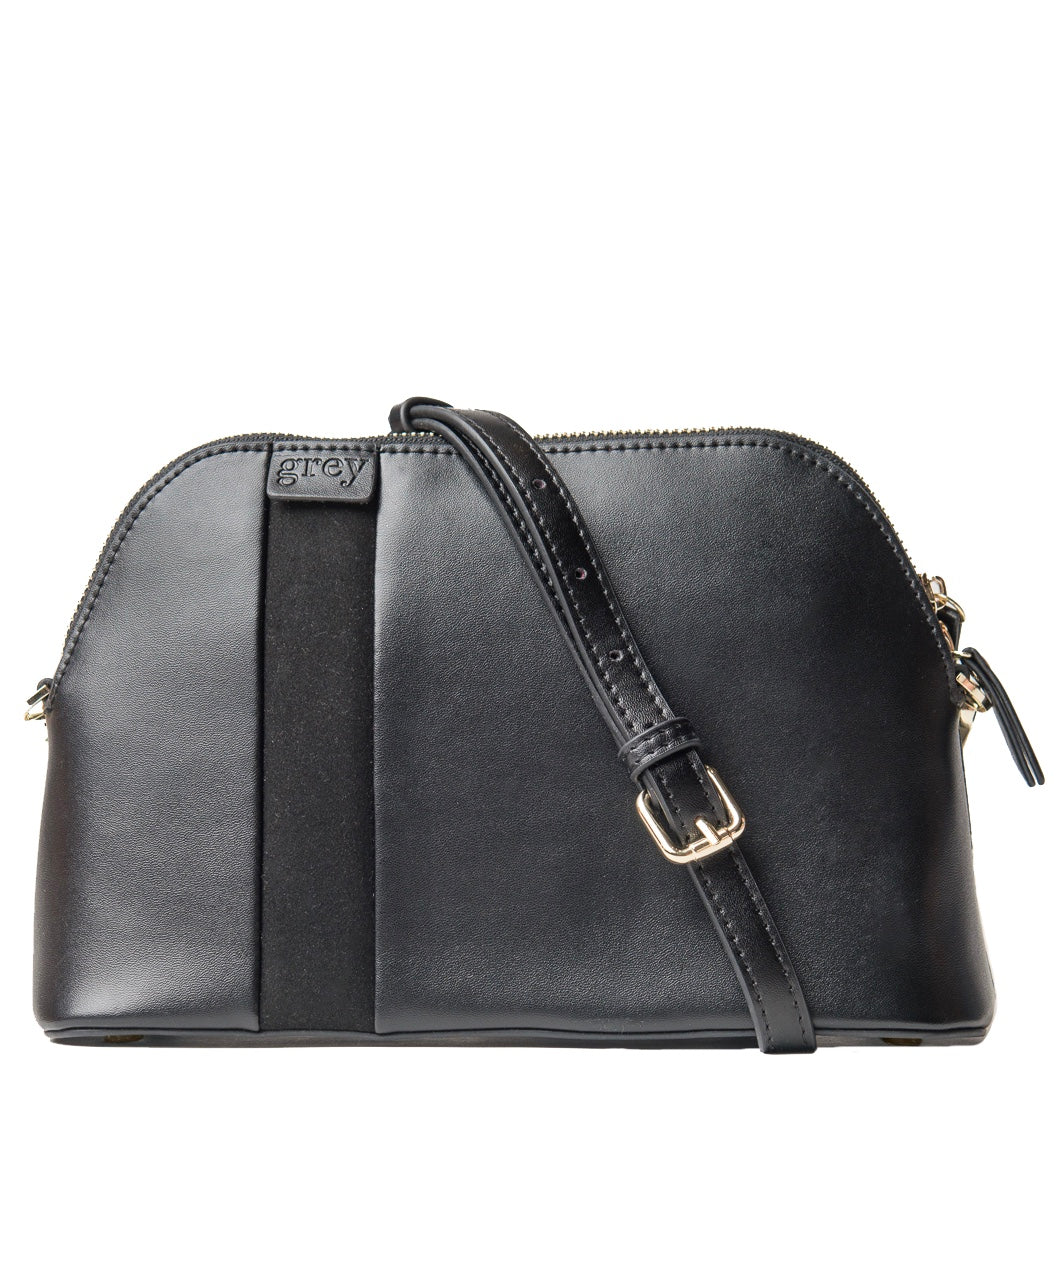 Mayden Cross Body (Black Leather with Black Suede) - Time Limited Sale! - greyortenhill